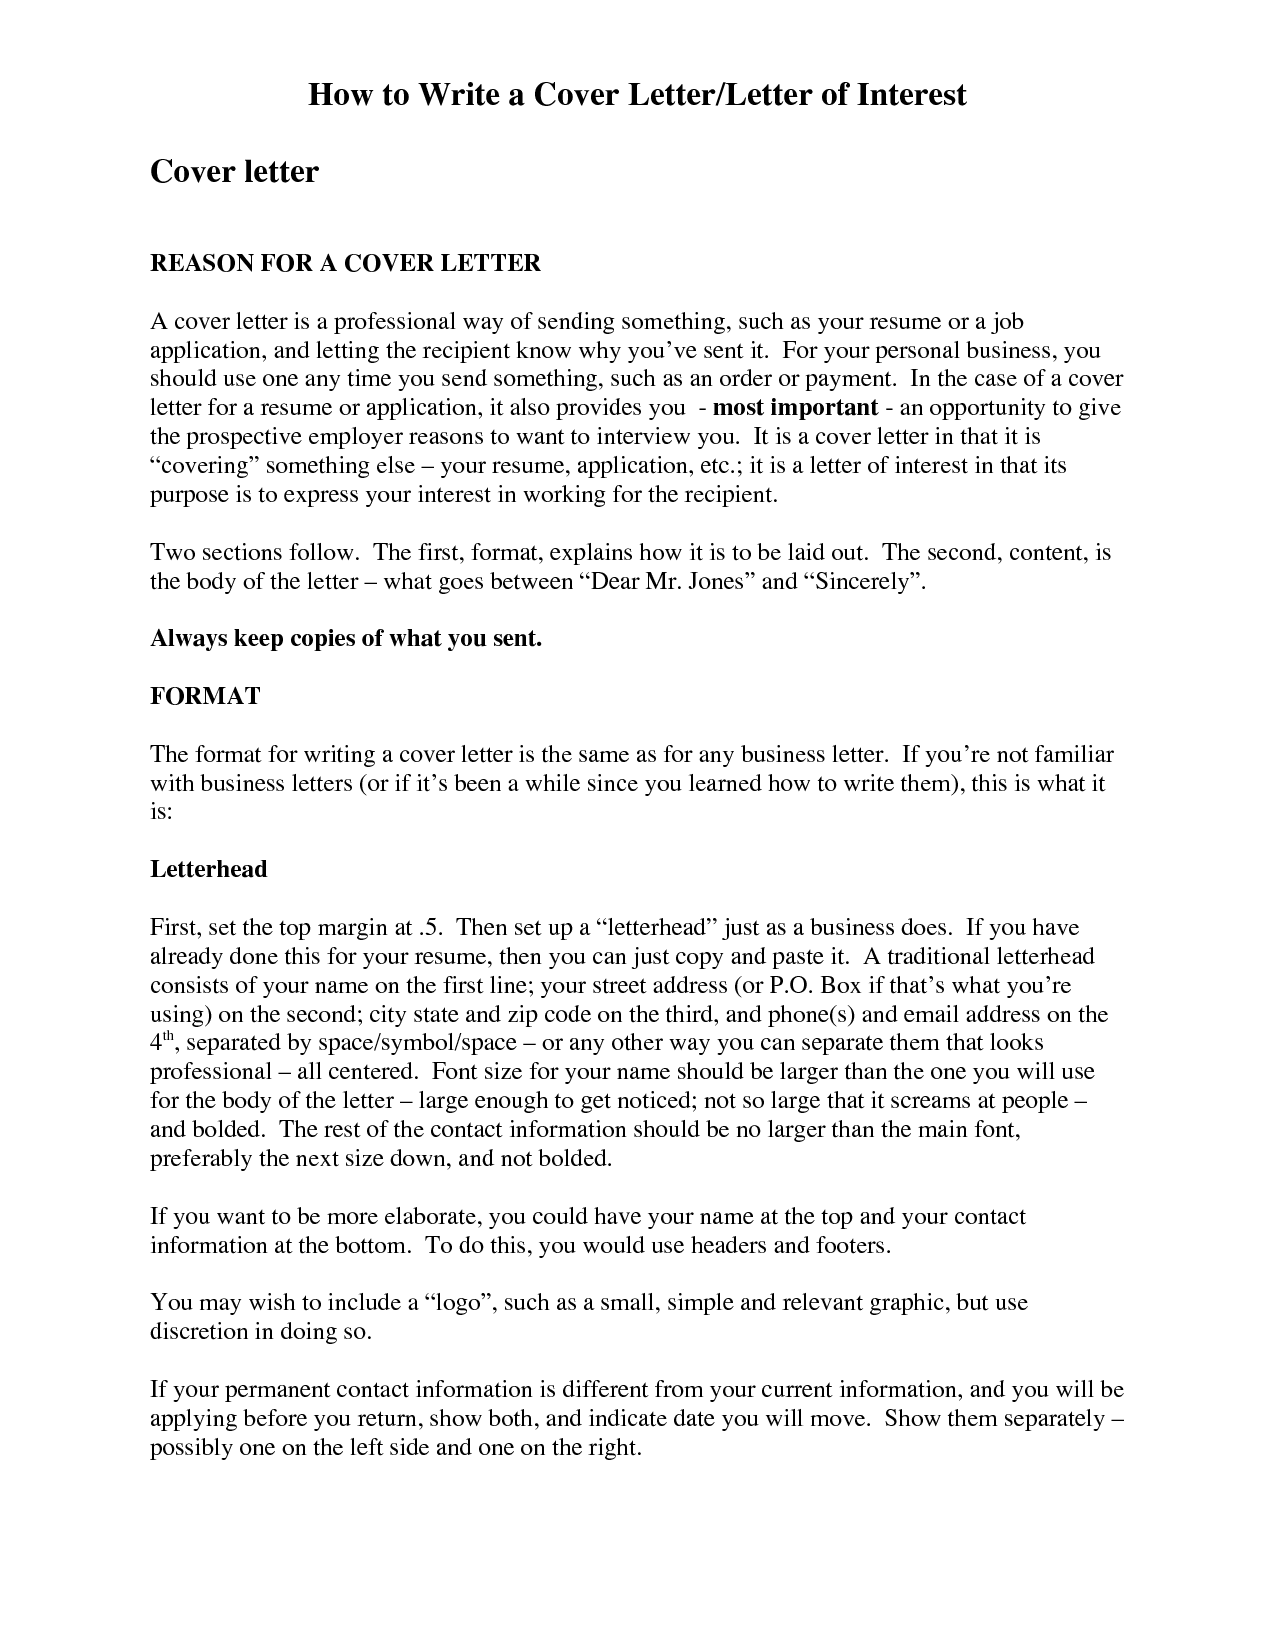 How To Wrie A Cover Letter of interest or Basic Letter of Interest resume template